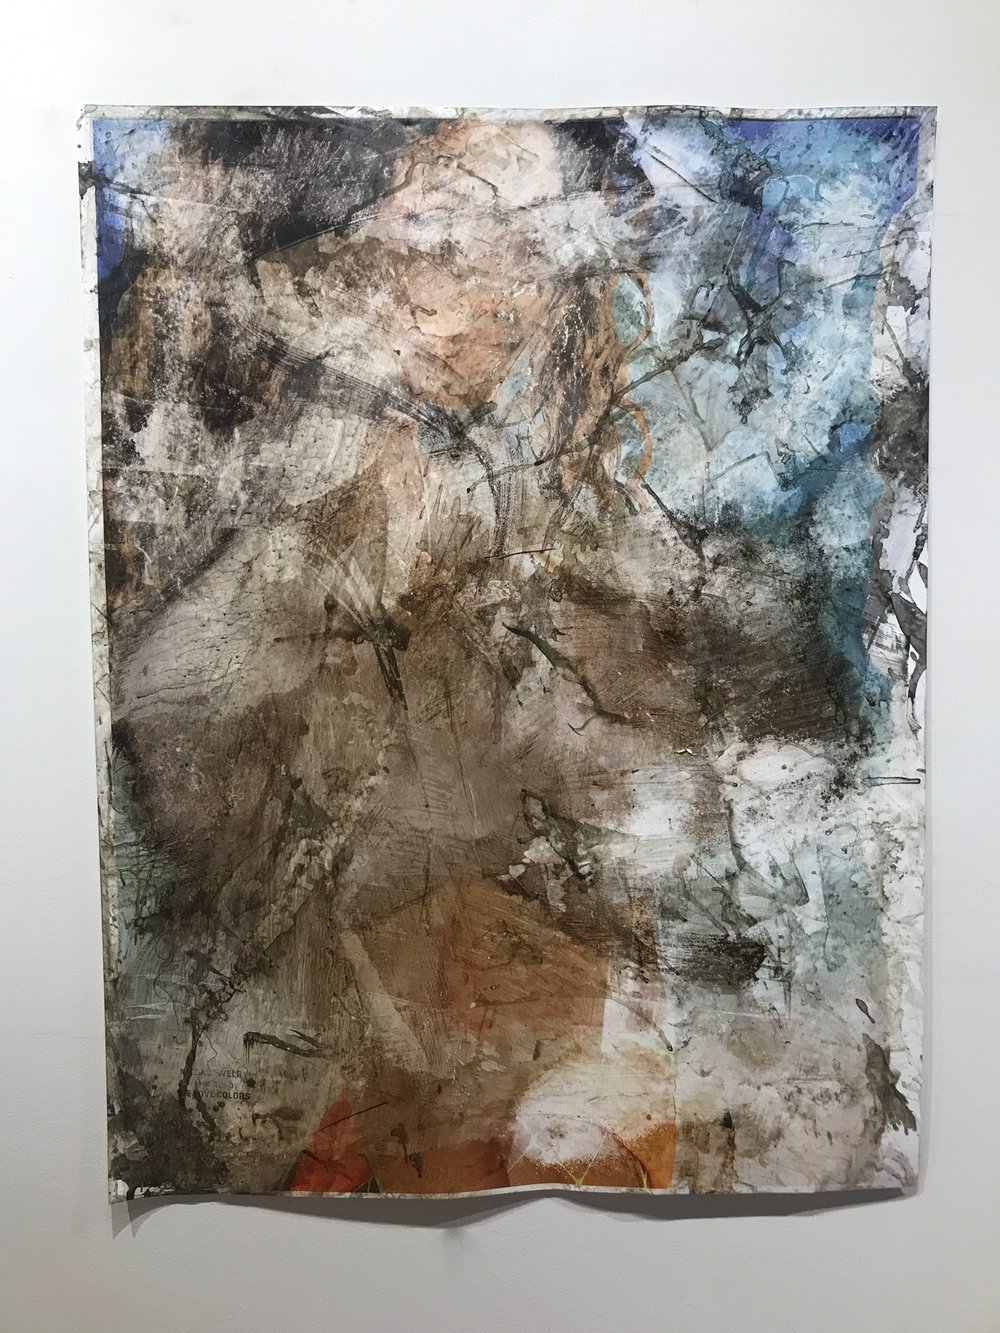 Fishnets   2018  47 x 36 in.  Citra solv on magazine, nail polish remover, pine sol, bleach, and window cleaner on photo paper